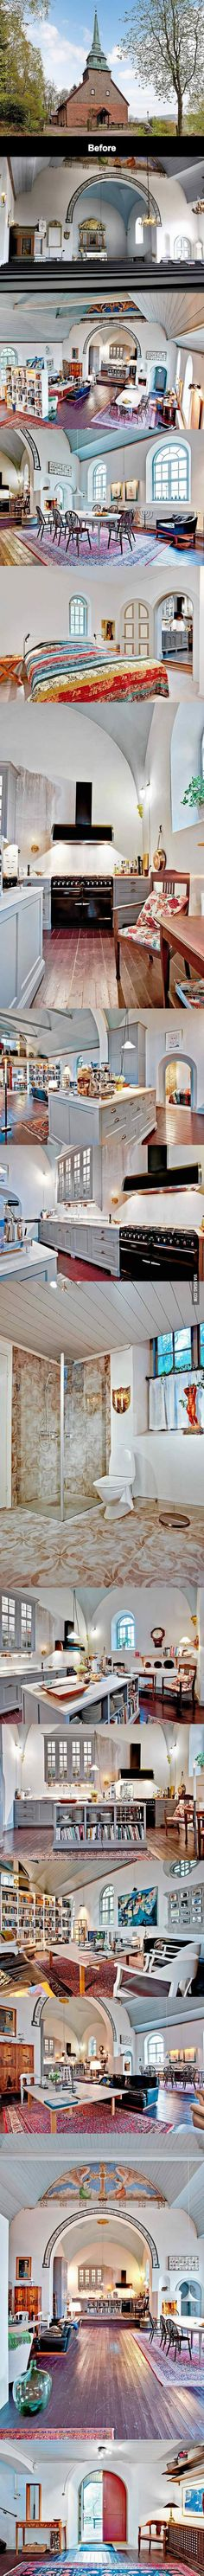 Old Swedish Church Turned Into Luxury Home